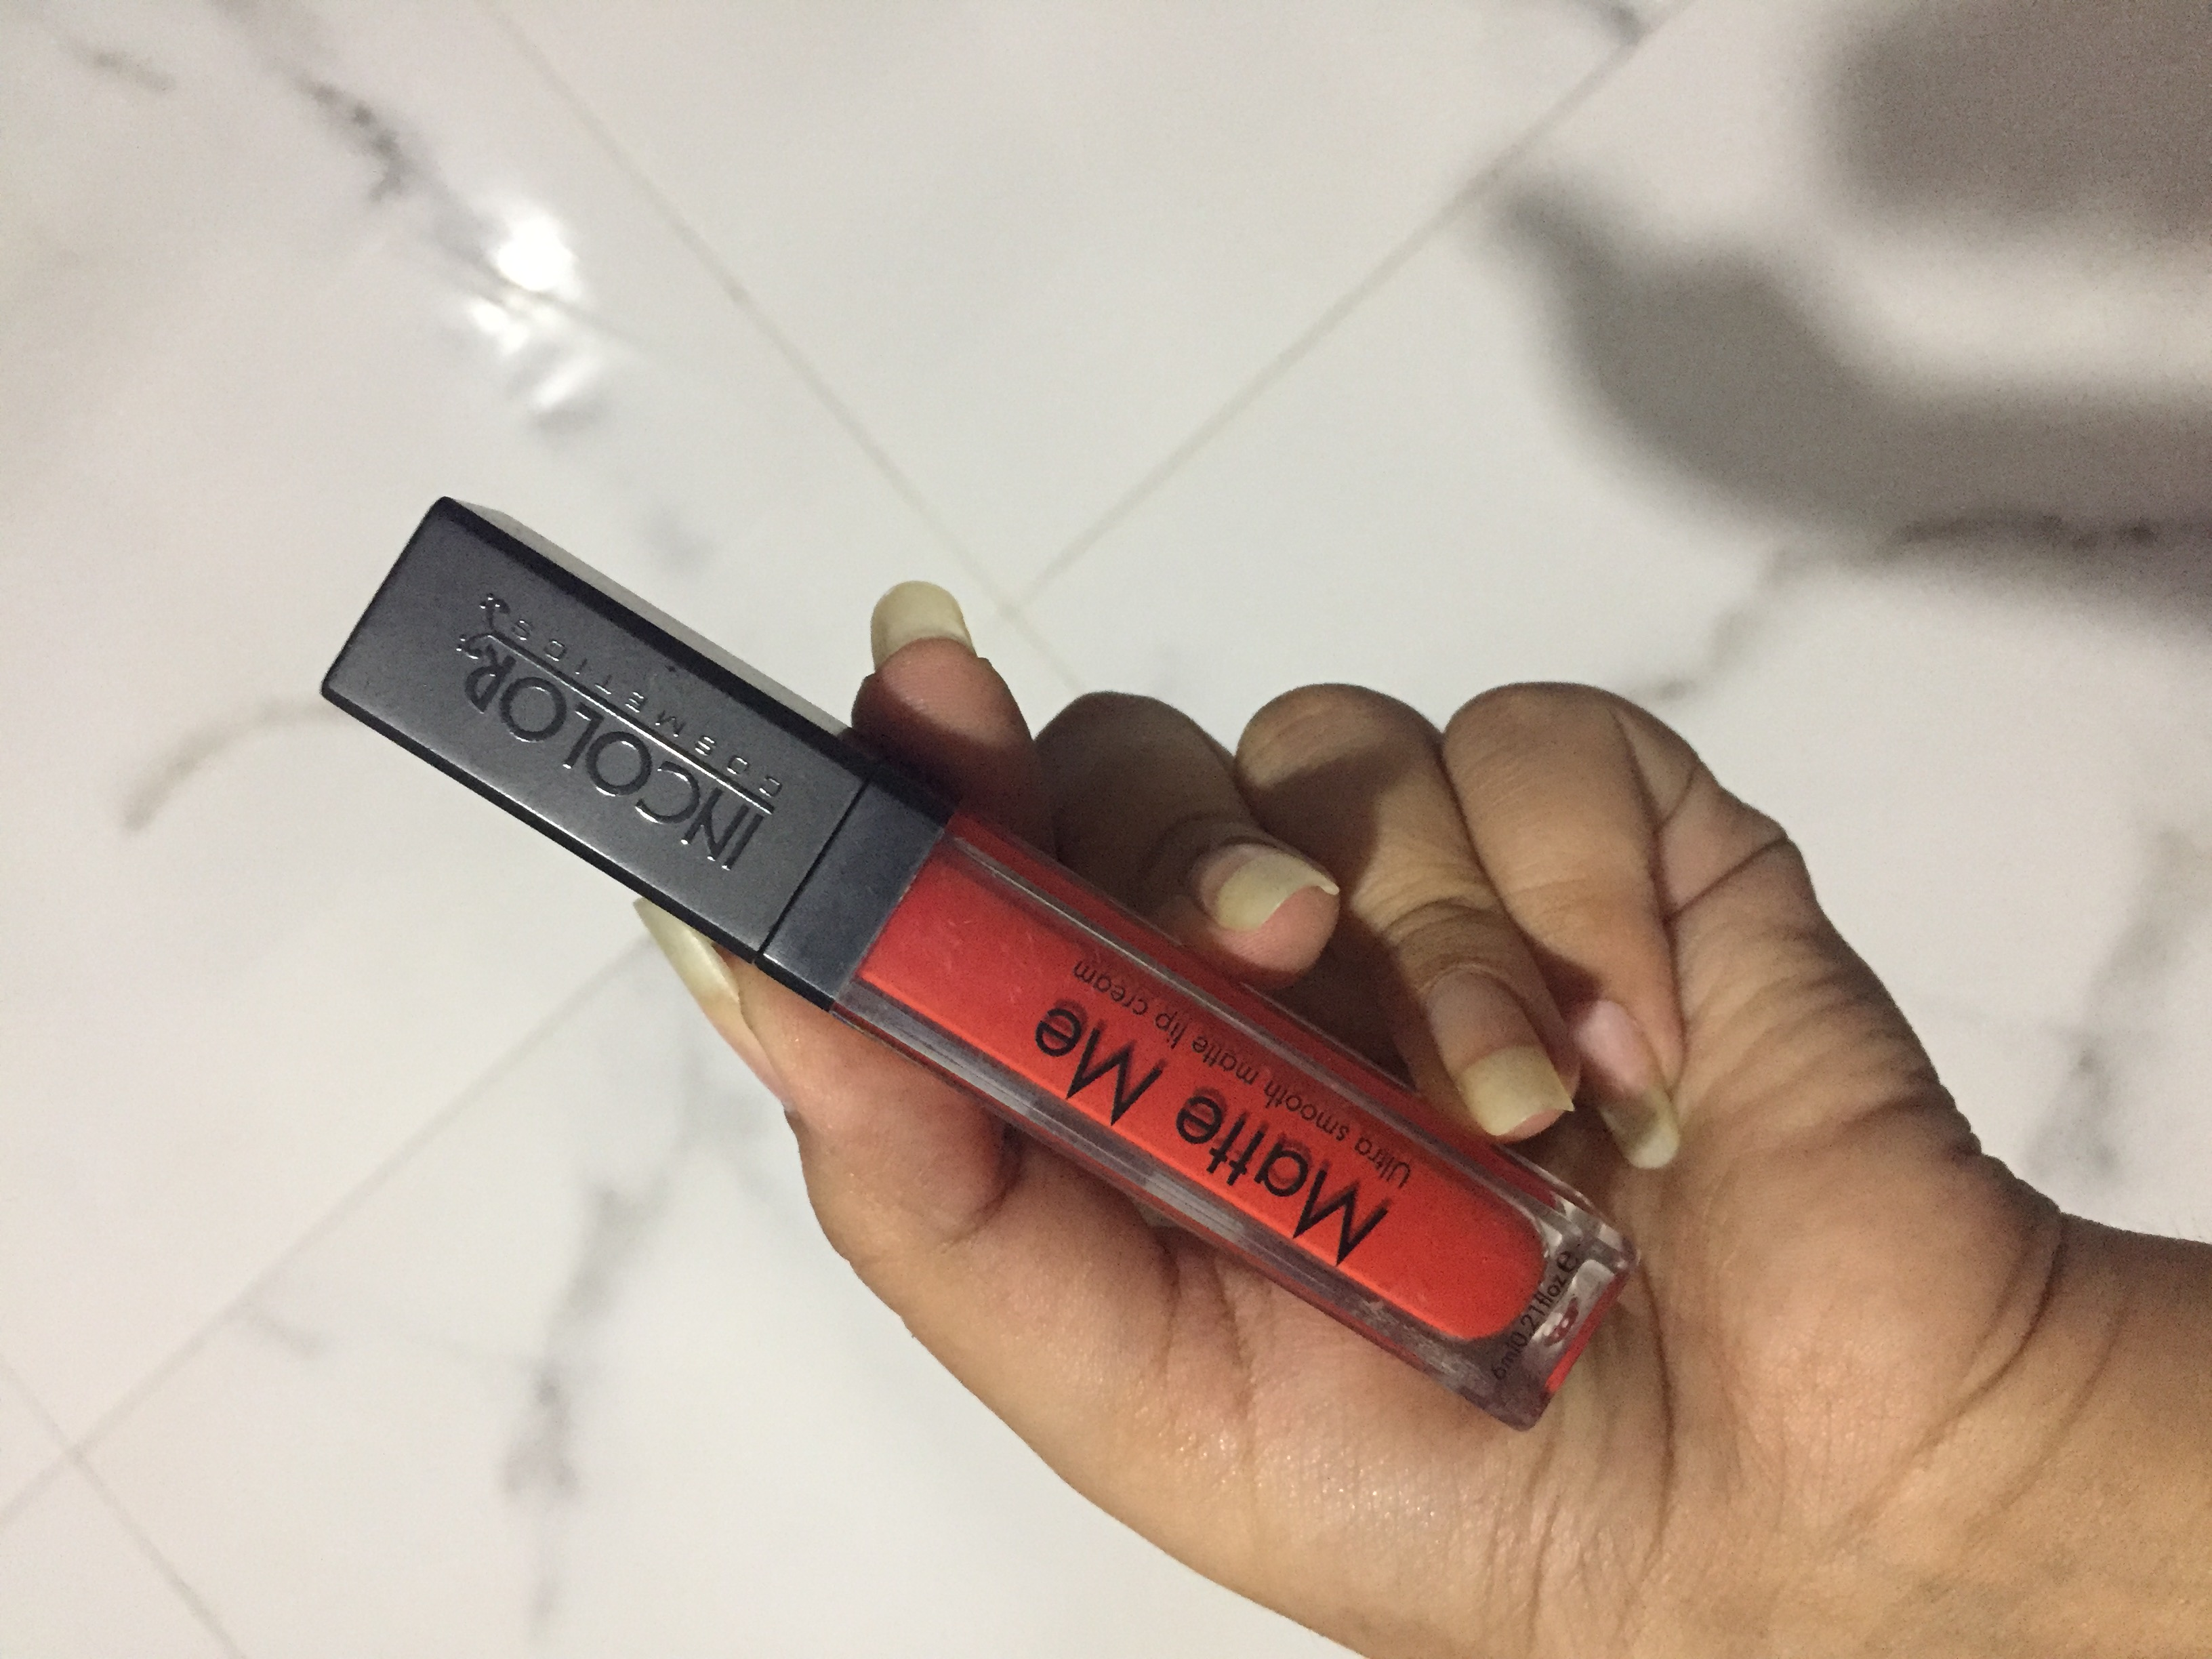 Incolor Matte Me Ultra Smooth Lip Cream-Affordable liquid lipstick-By @bhavikaaramani